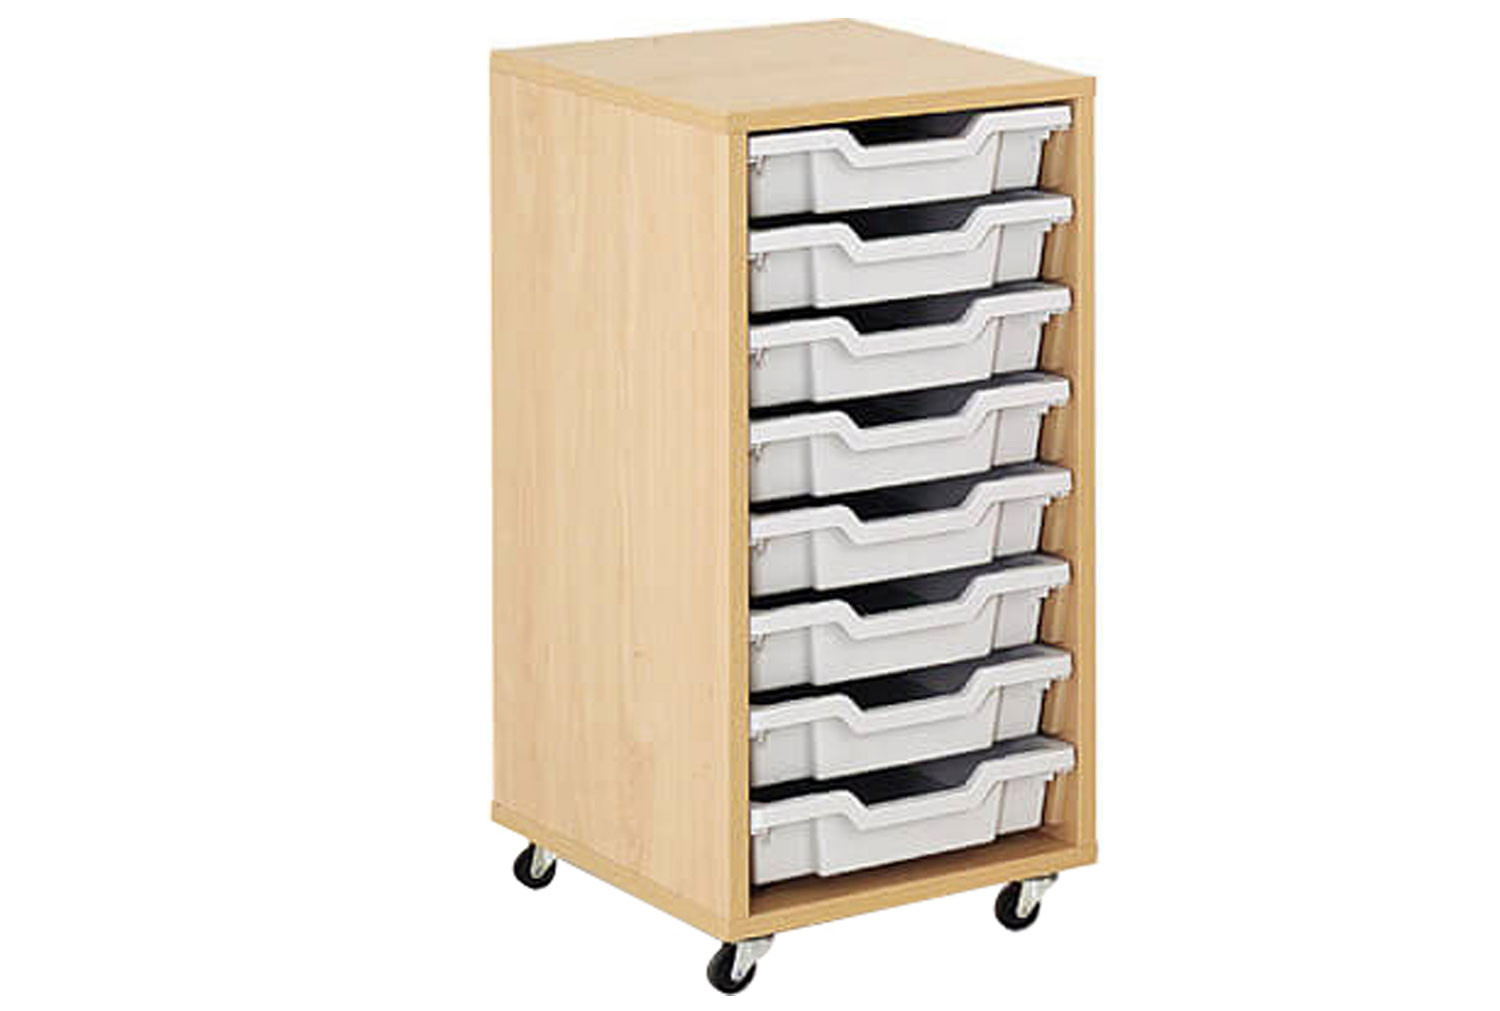 Mobile tray storage unit with 8 shallow Gratnells trays